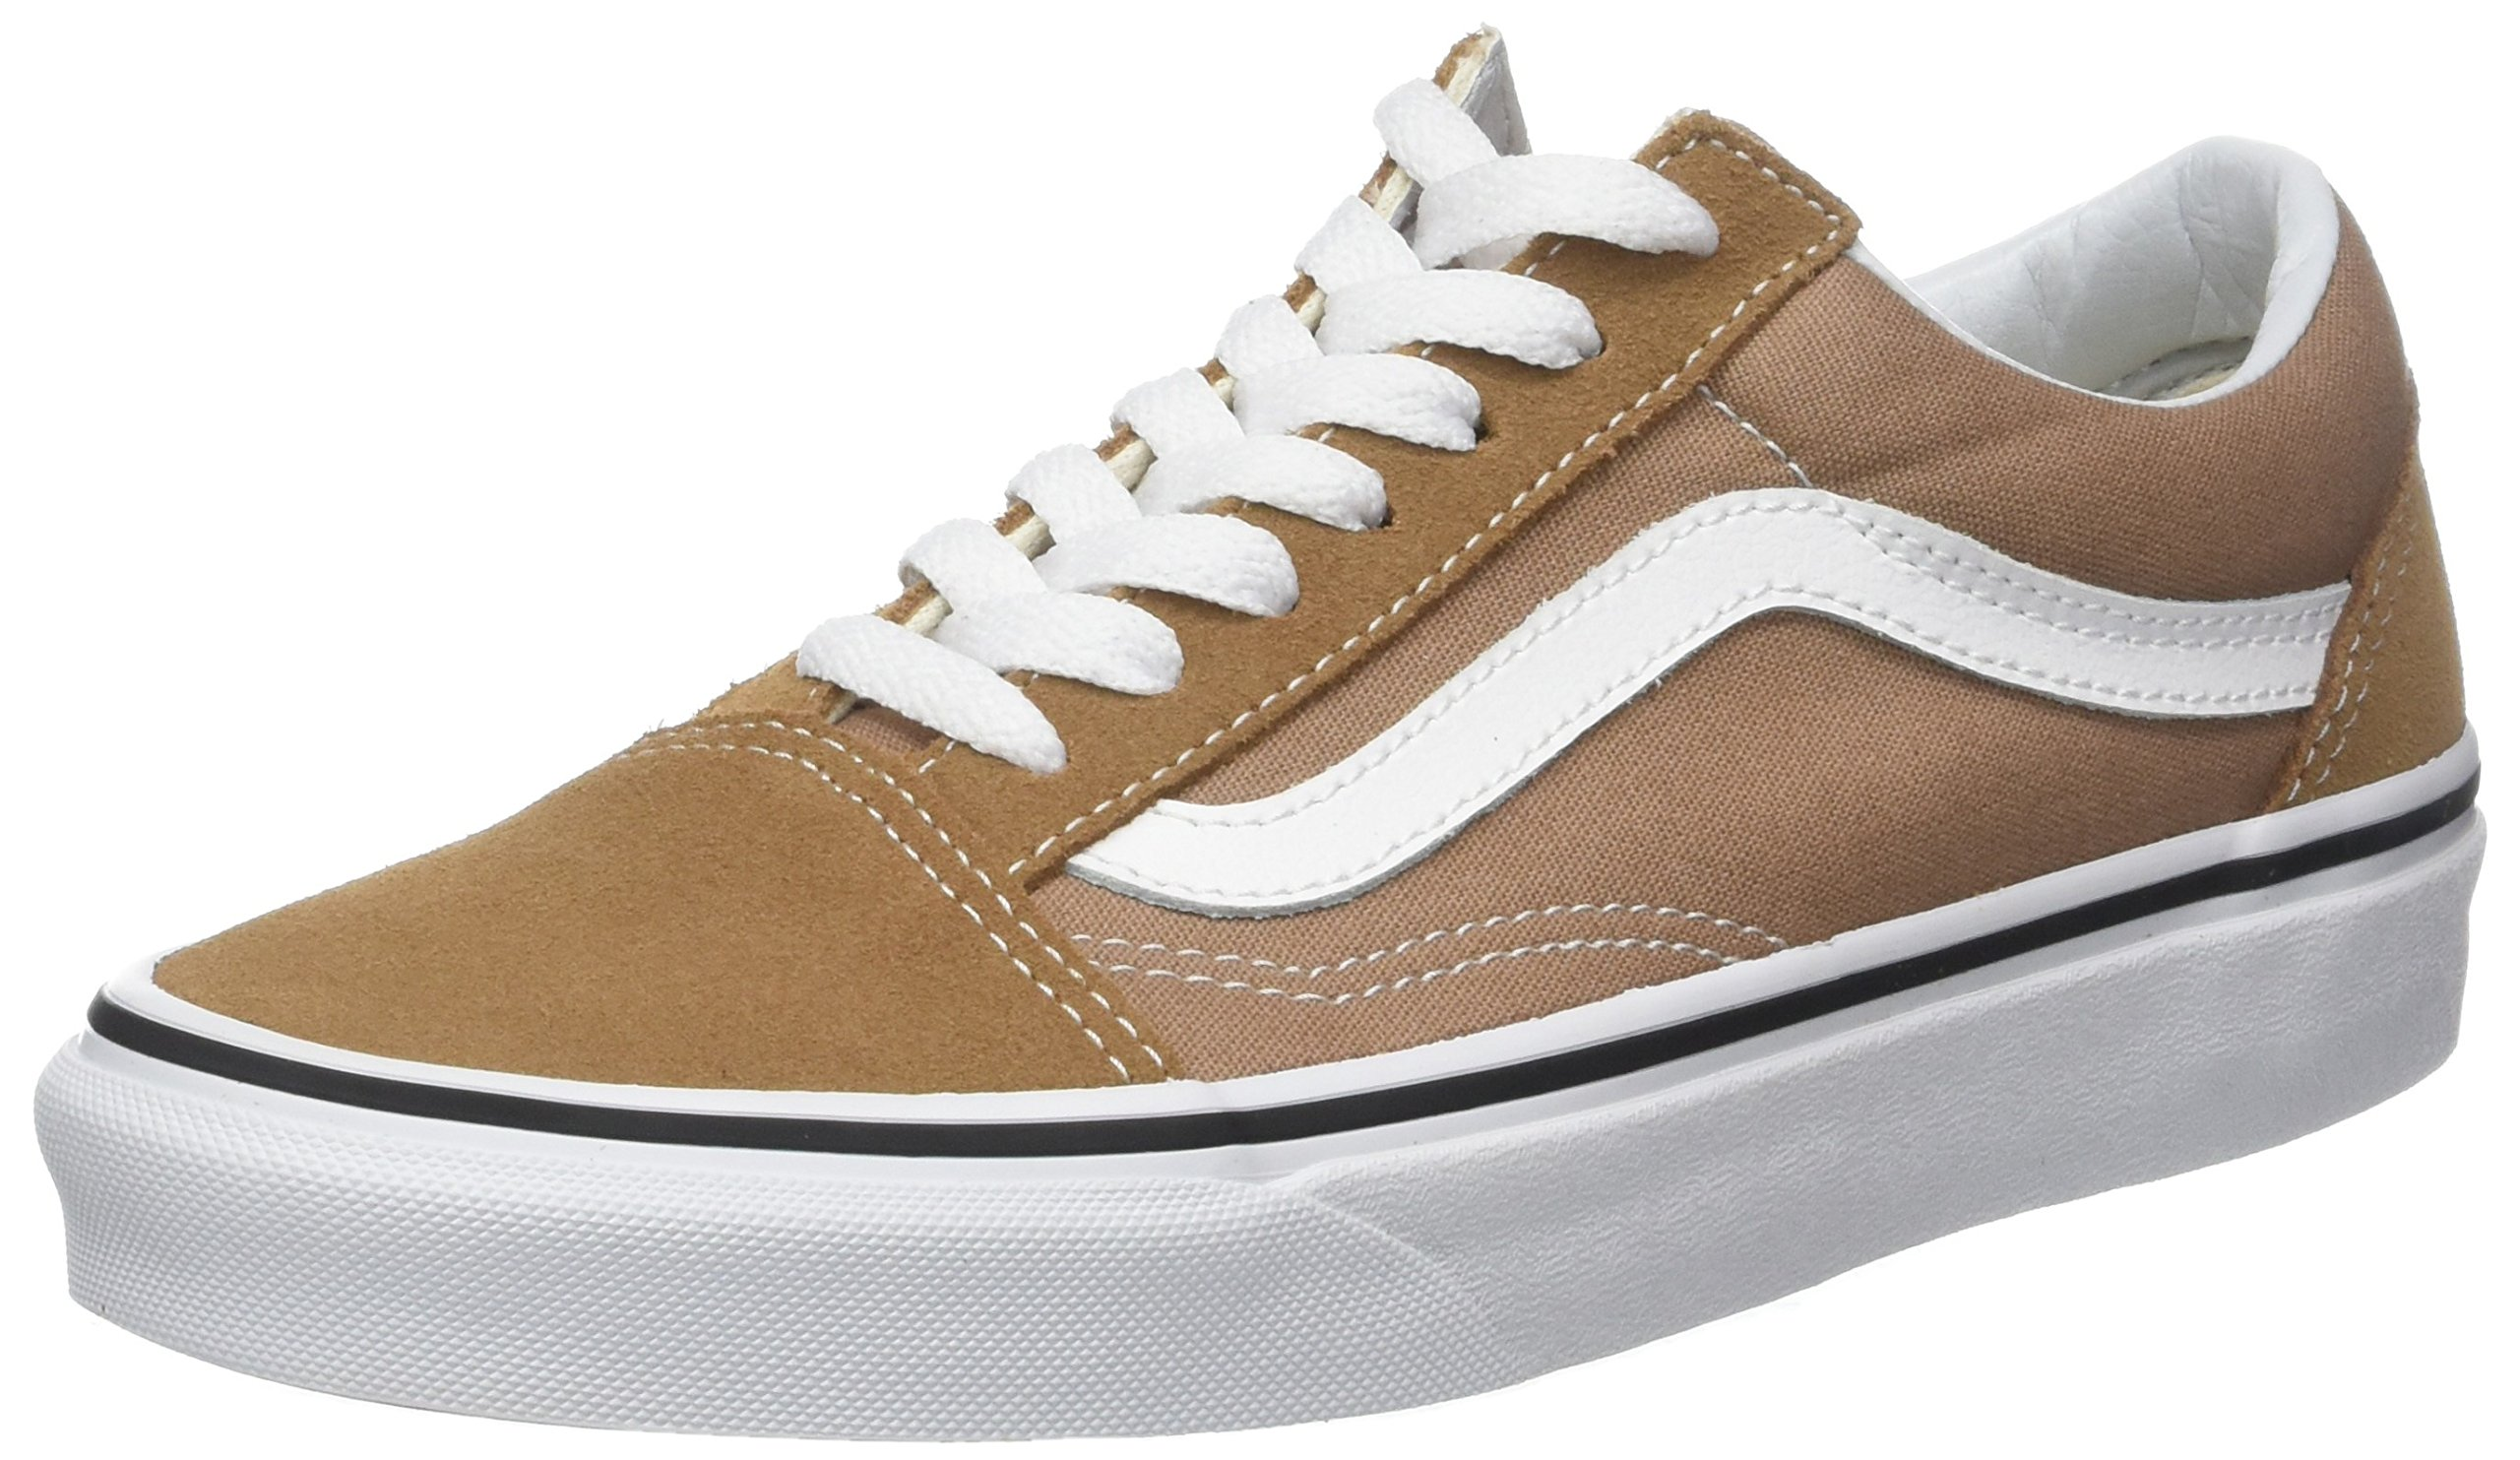 ced898fa5c5cbb Galleon - Vans Unisex Adults Old Skool Classic Suede Canvas Sneakers ...